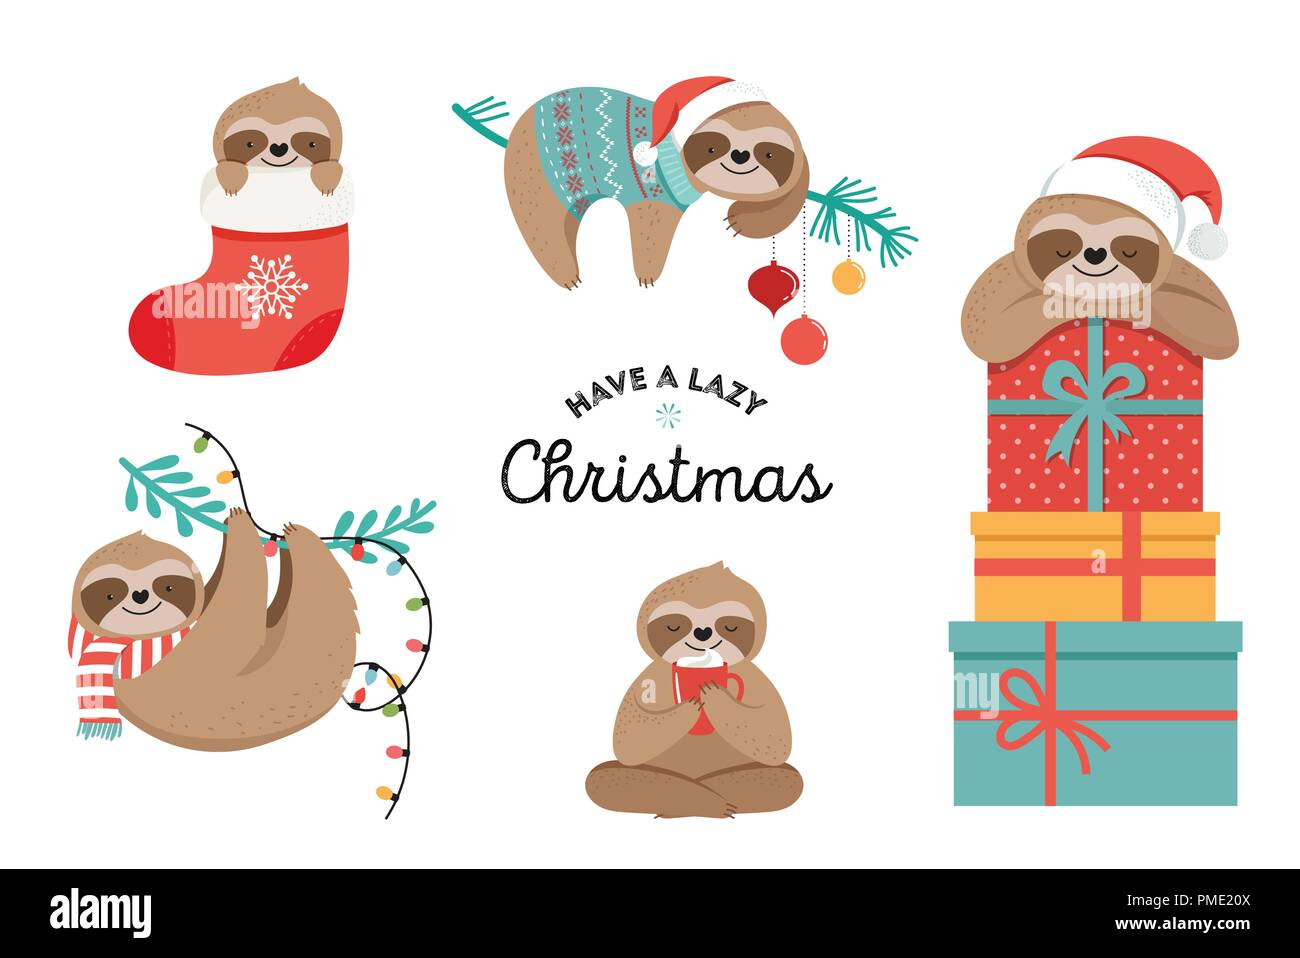 Cute sloths, funny Christmas illustrations with Santa Claus costumes ...